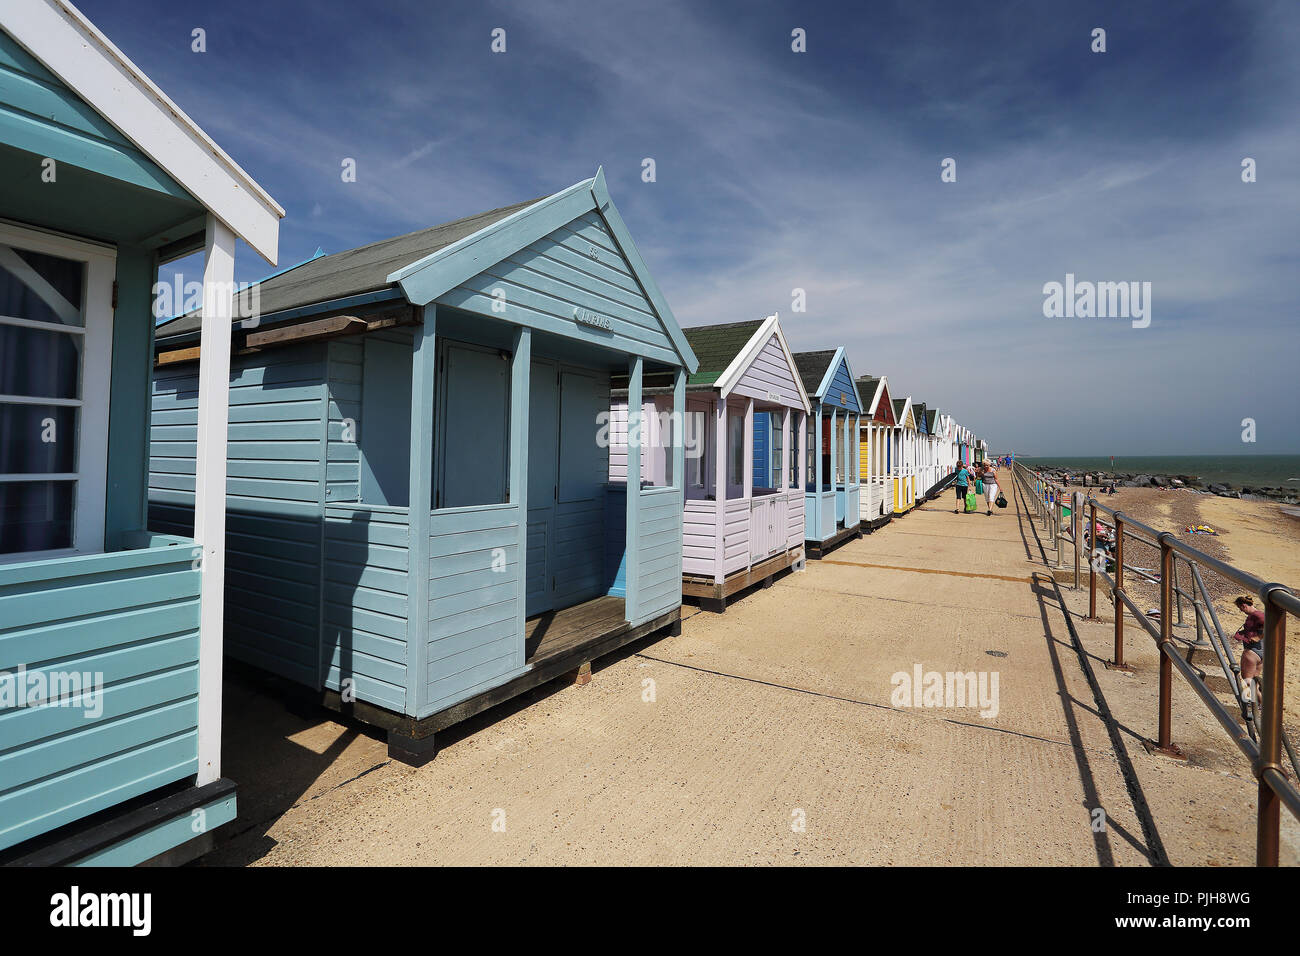 People relaxing in front of a line of beach huts during the heatwave of 2018 at Southwold, Suffolk, UK. - Stock Image